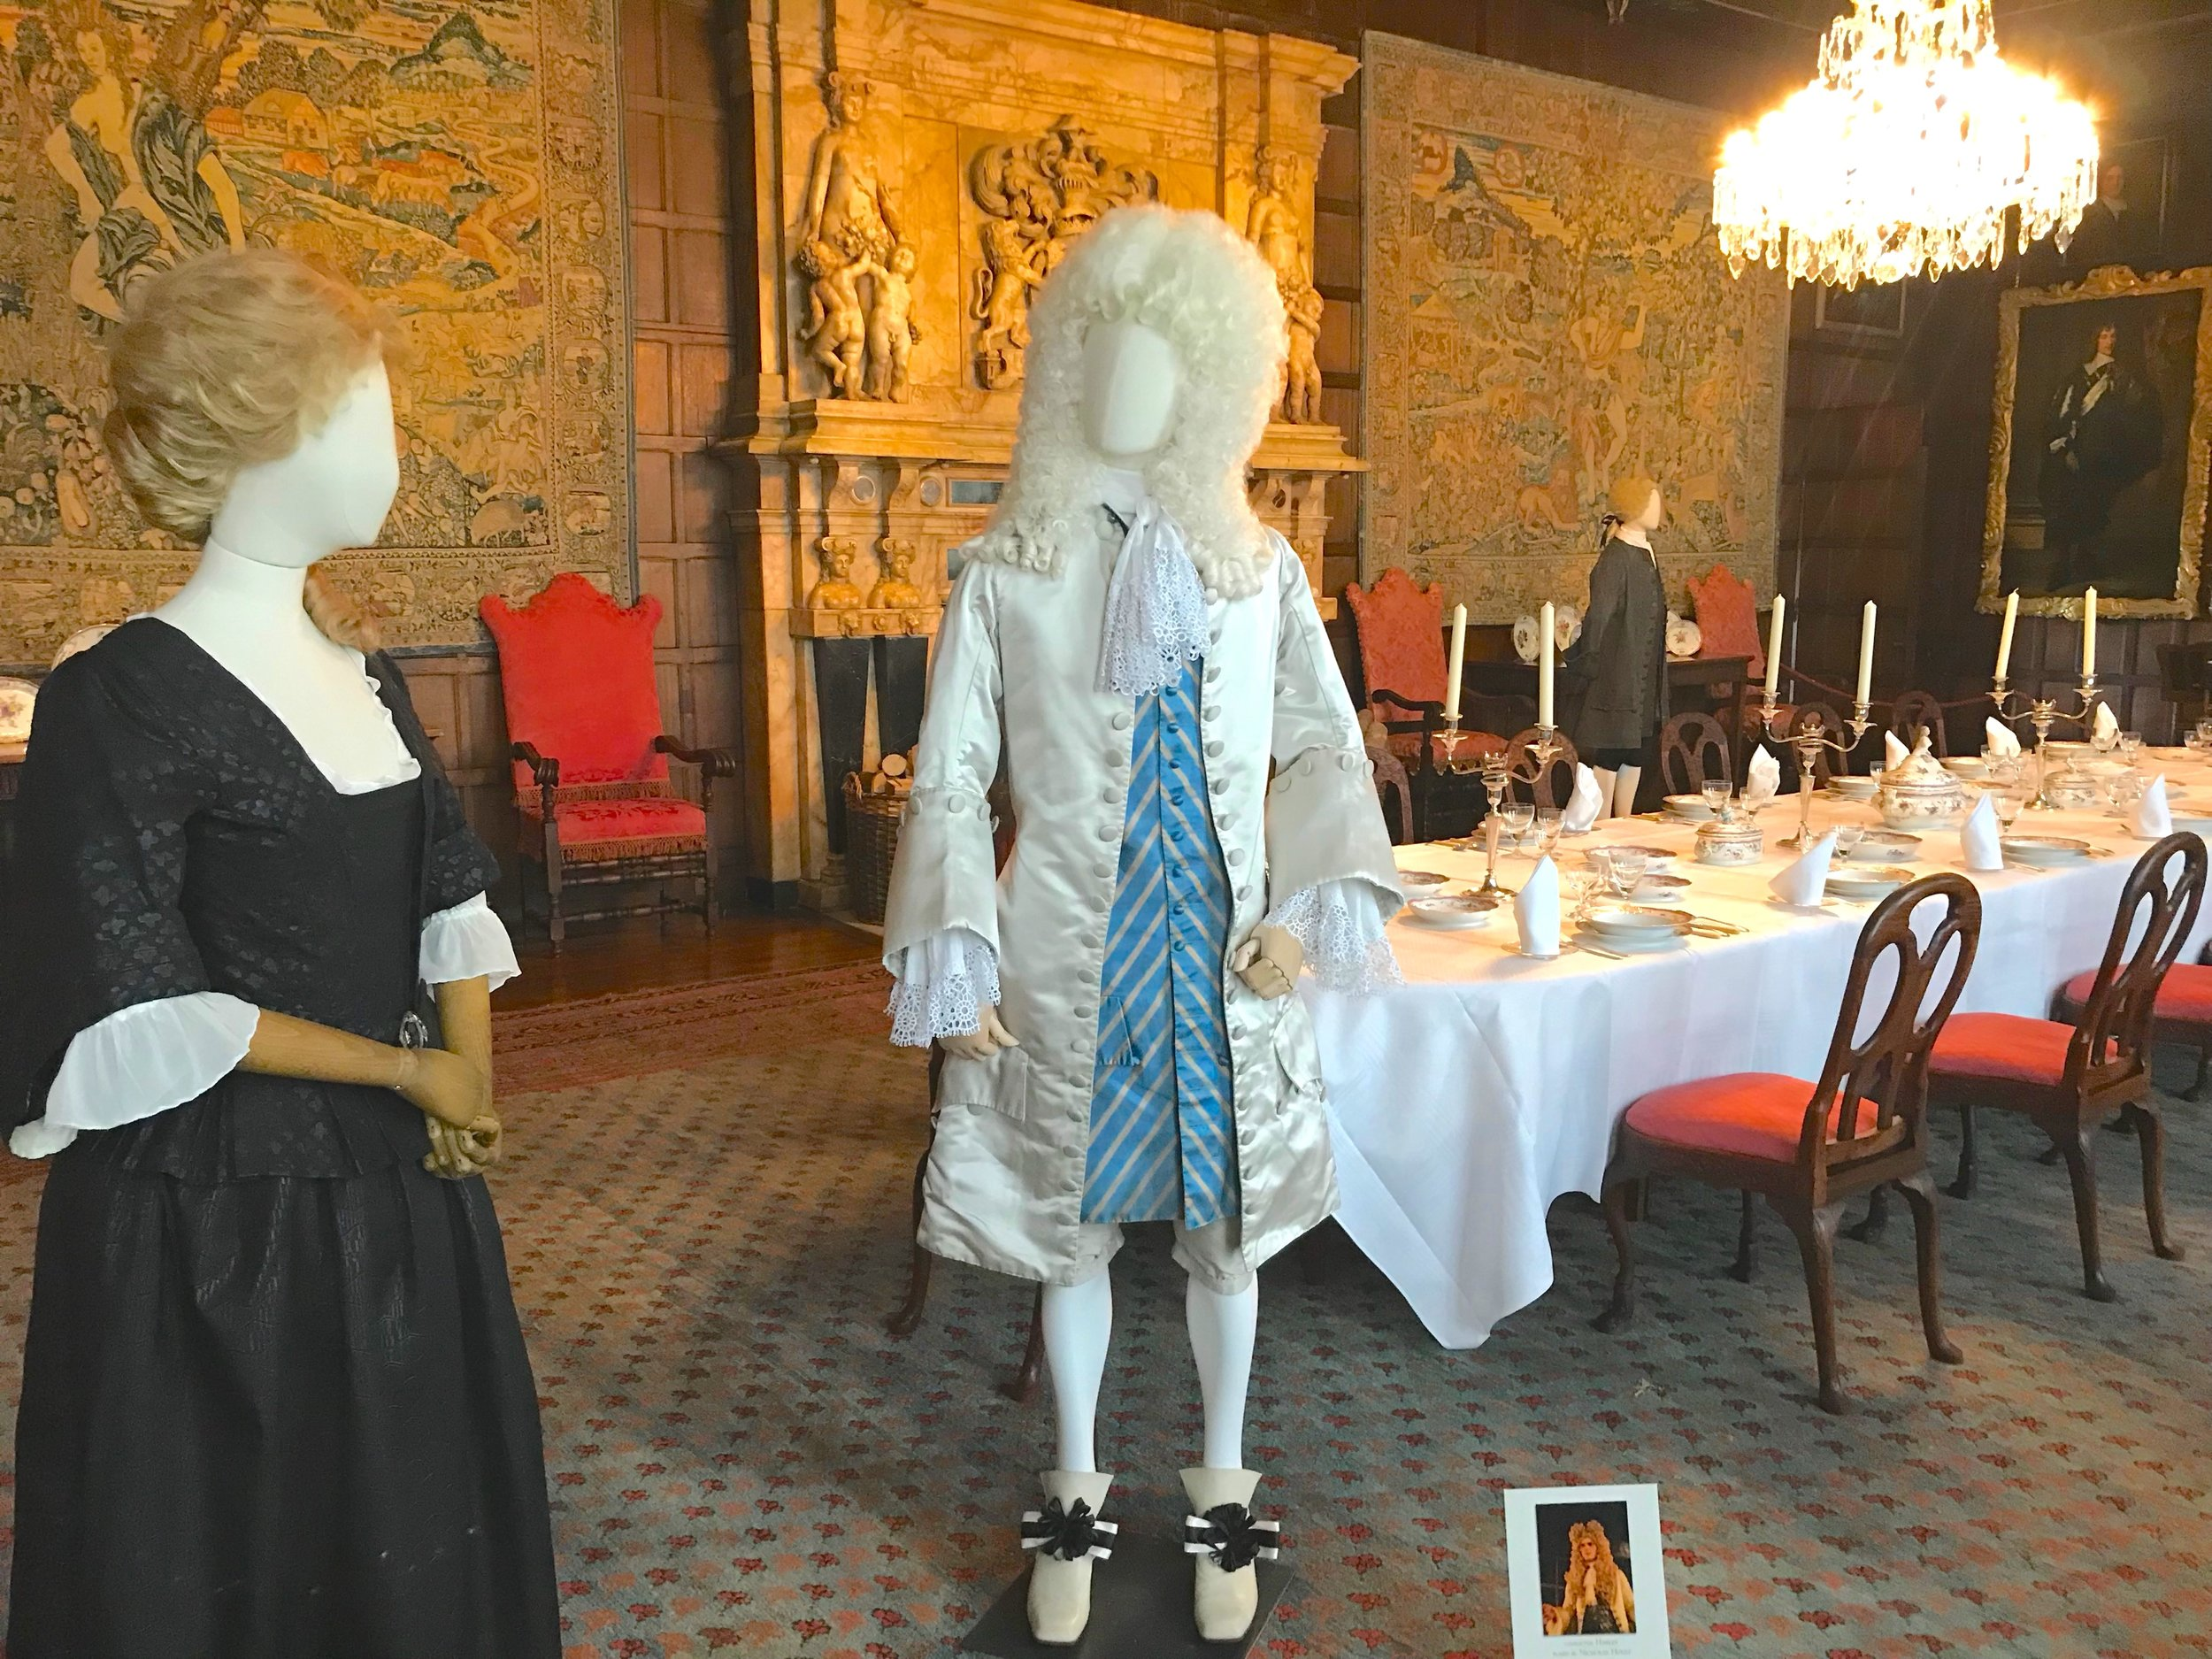 Costumes worn by Emma Stone, Nicholas Holt for The Favourite, on display in Hatfield House